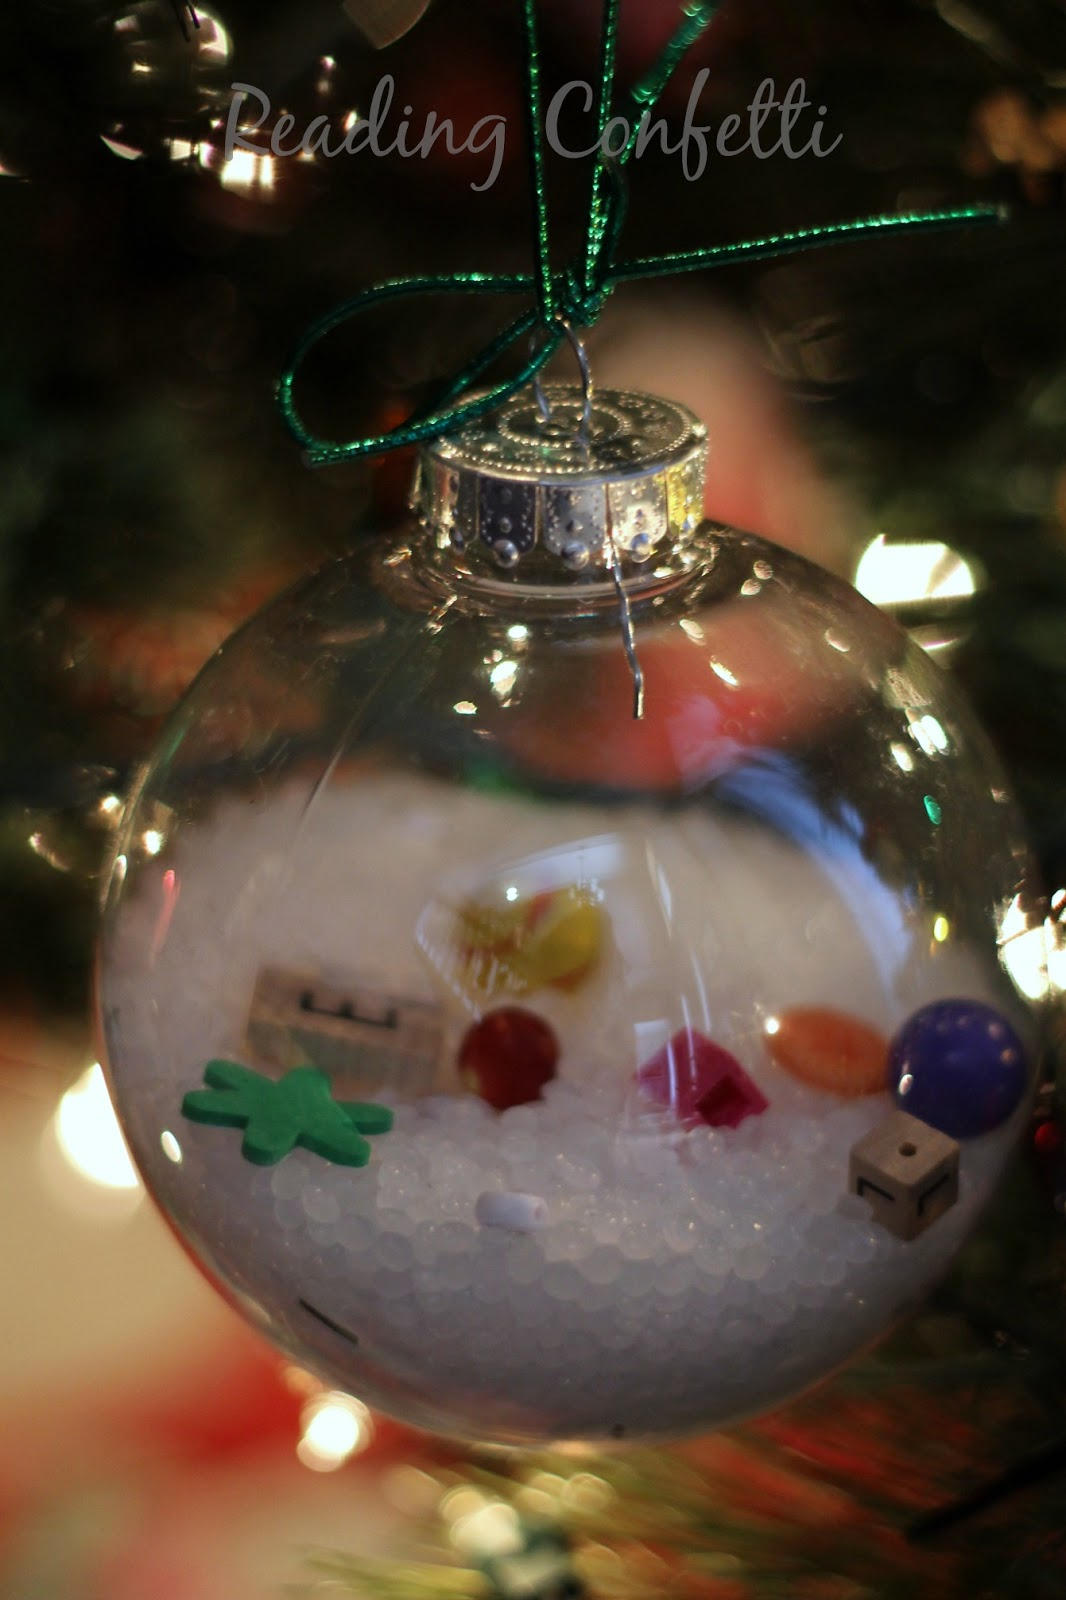 Lots of ideas for easy gifts that kids can make.